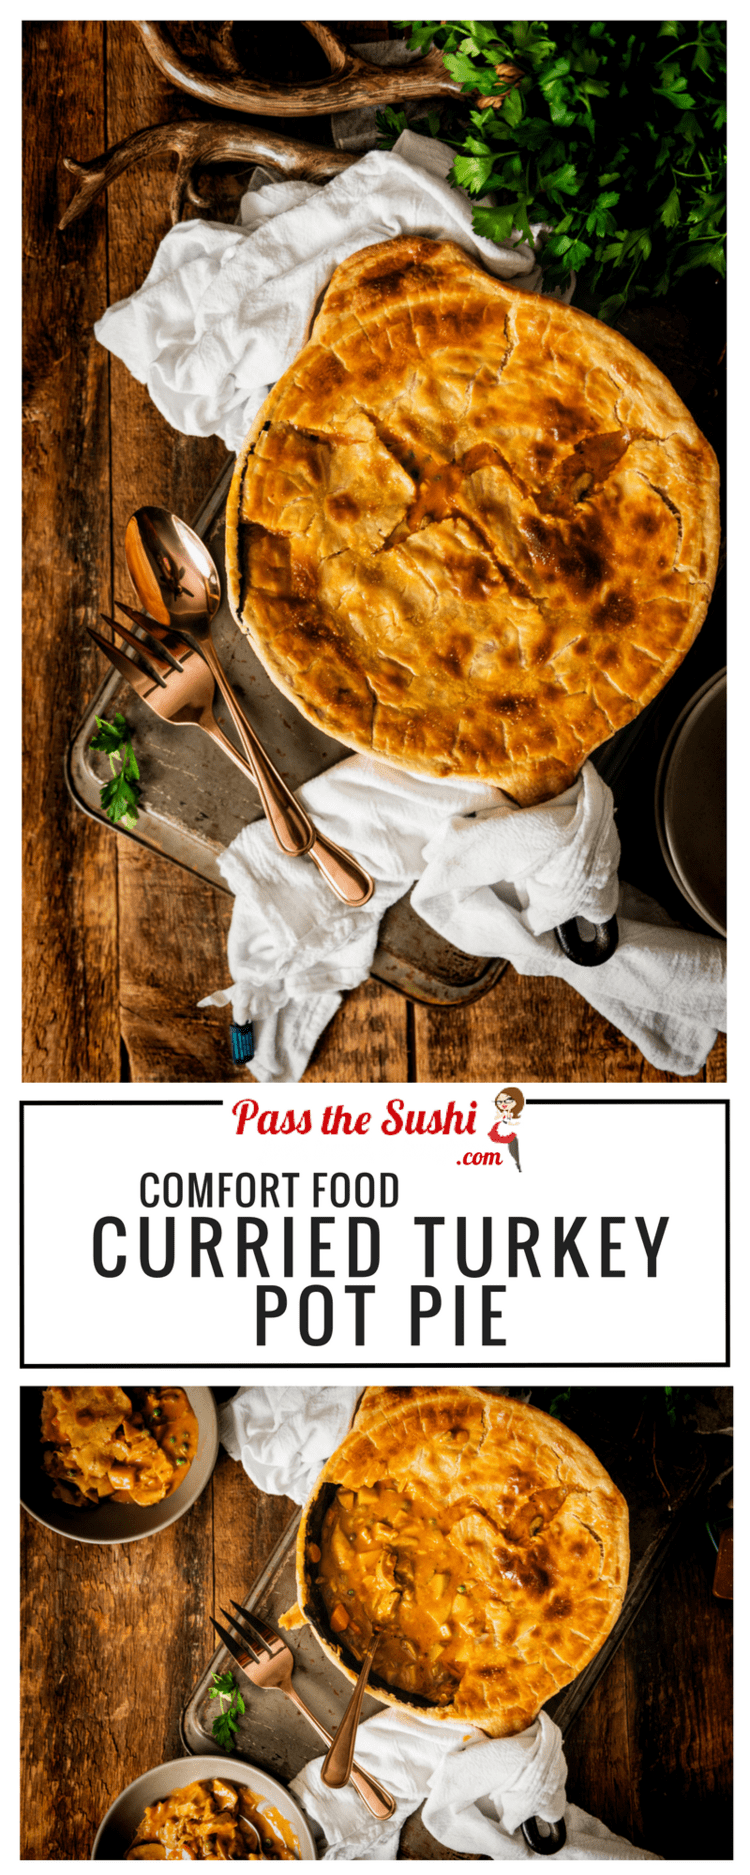 Talk about comfort food! Curried Turkey PotPie - perfect for using up leftover turkey or chicken | Recipe at PasstheSushi.com